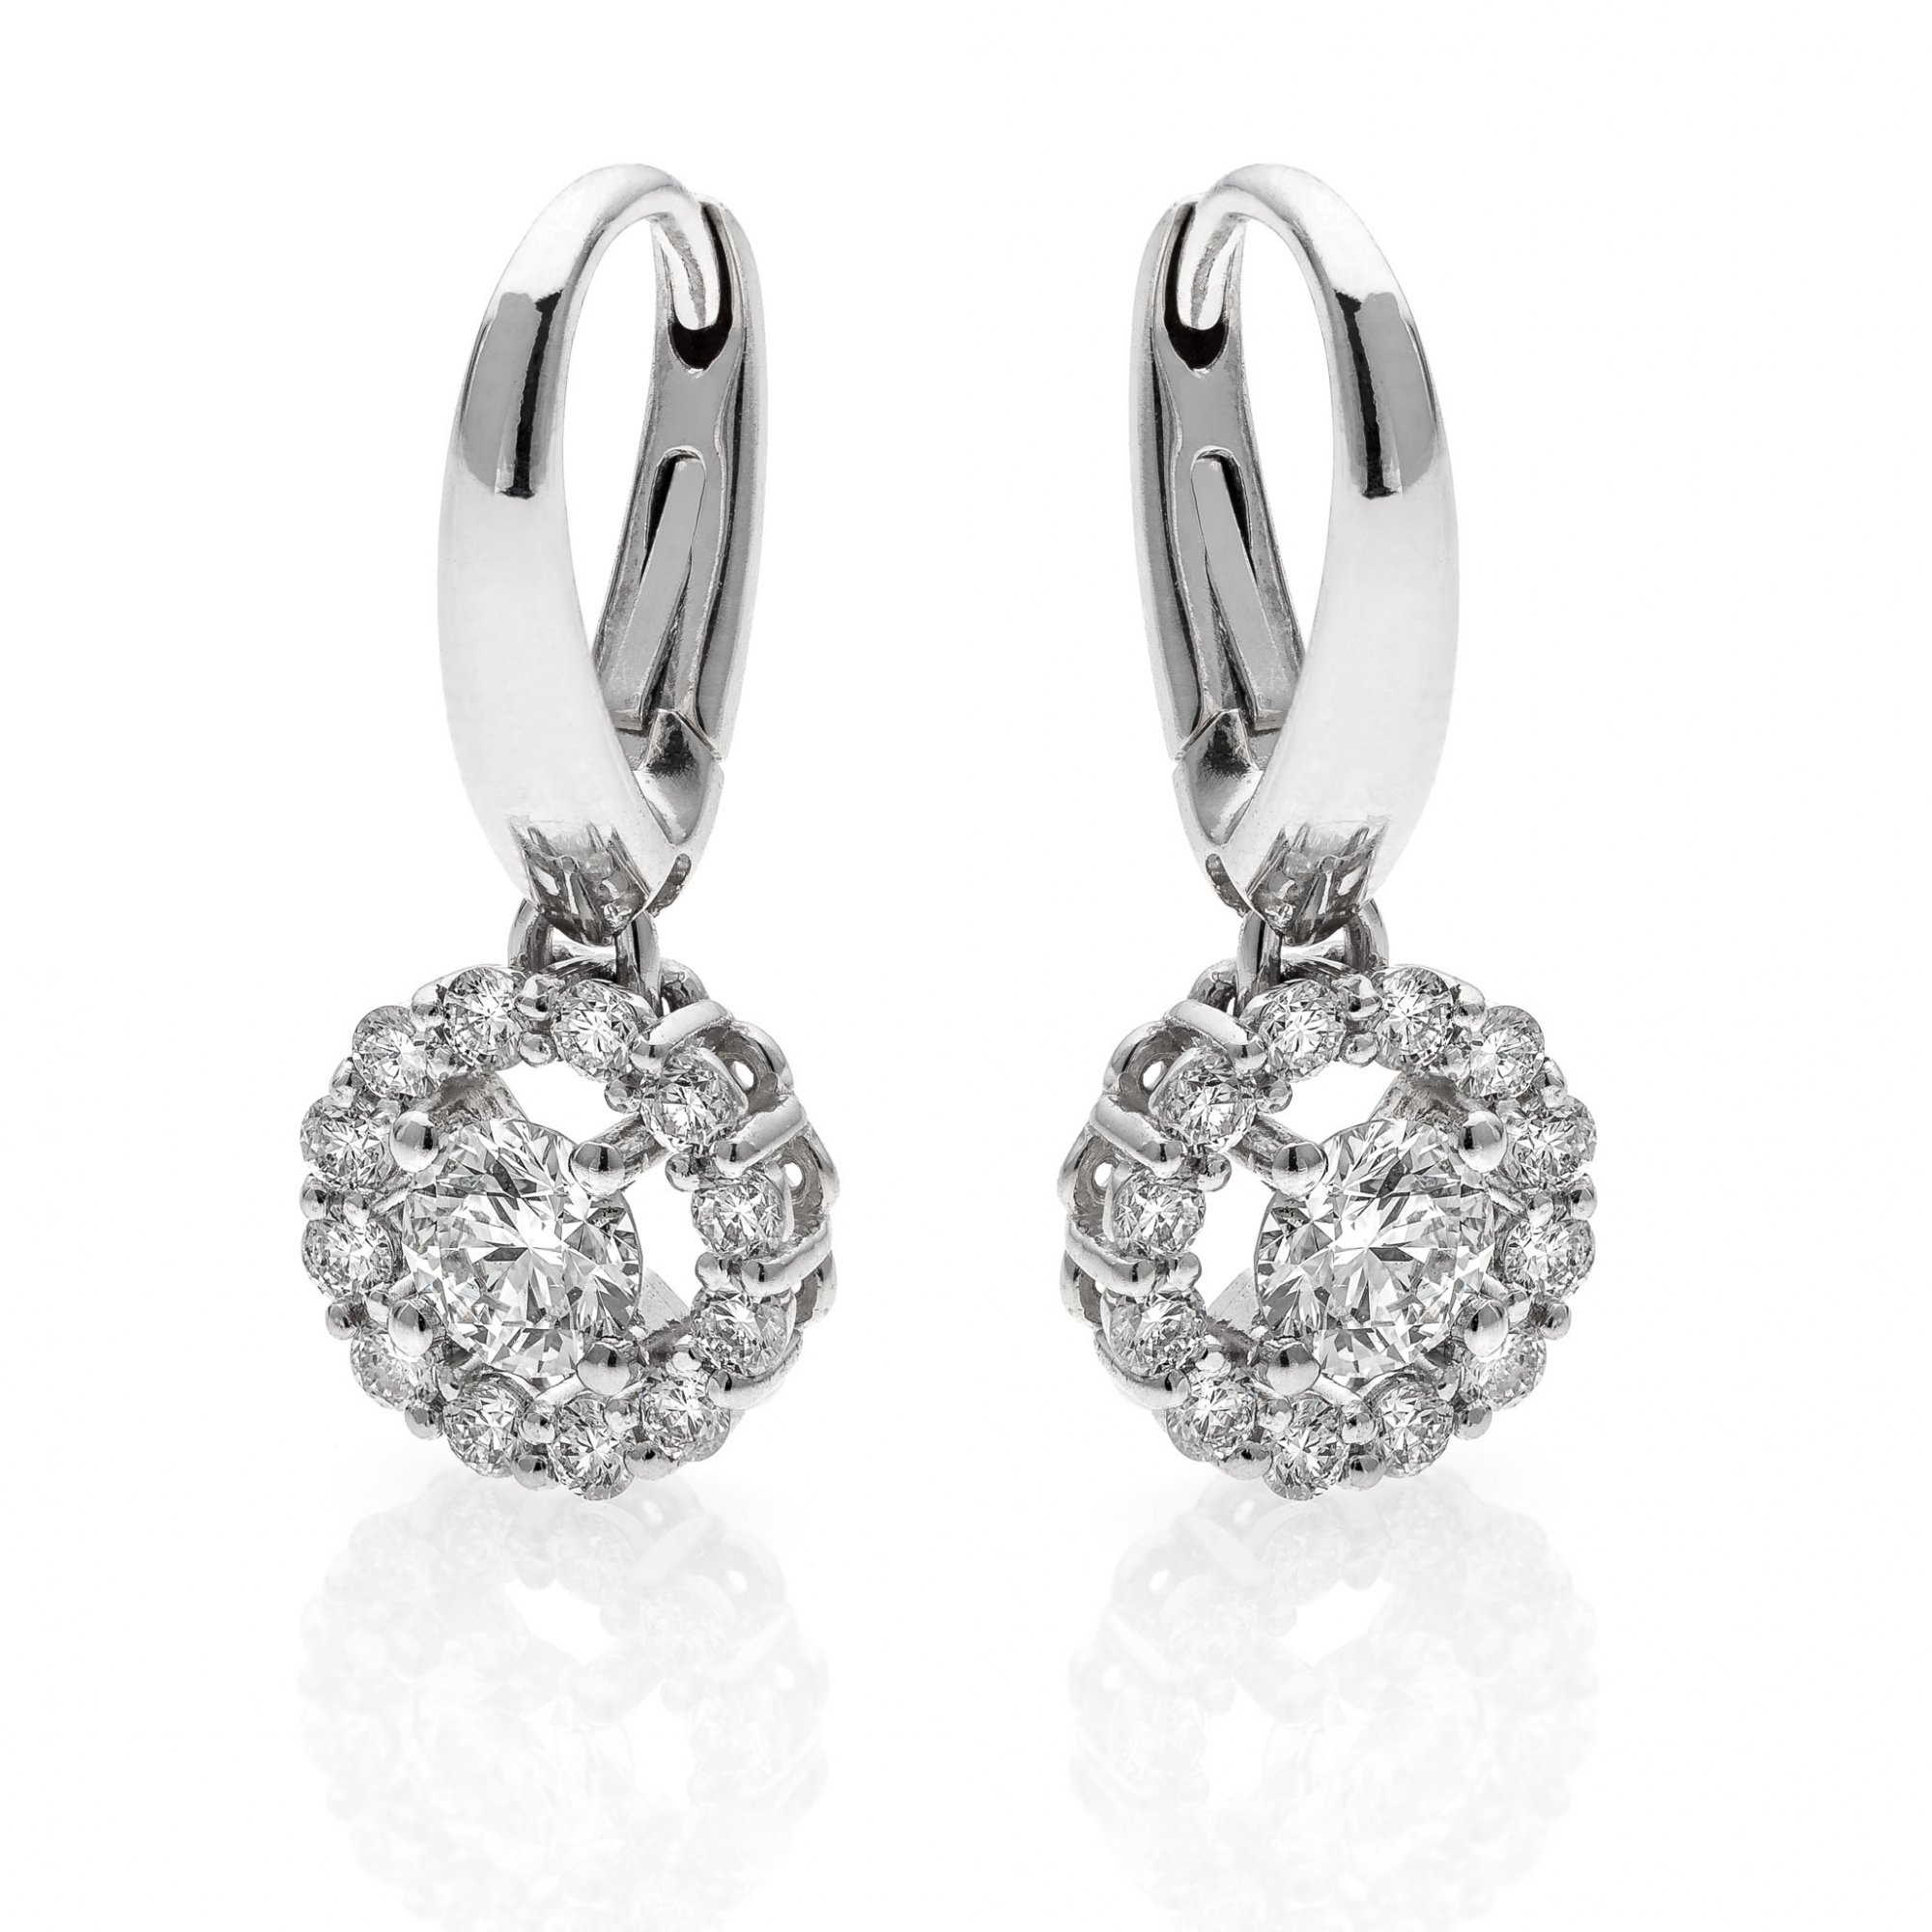 18 KT white gold earrings with round brilliant cut diamonds ct.0.90 + ct.0.30 VS1 F color